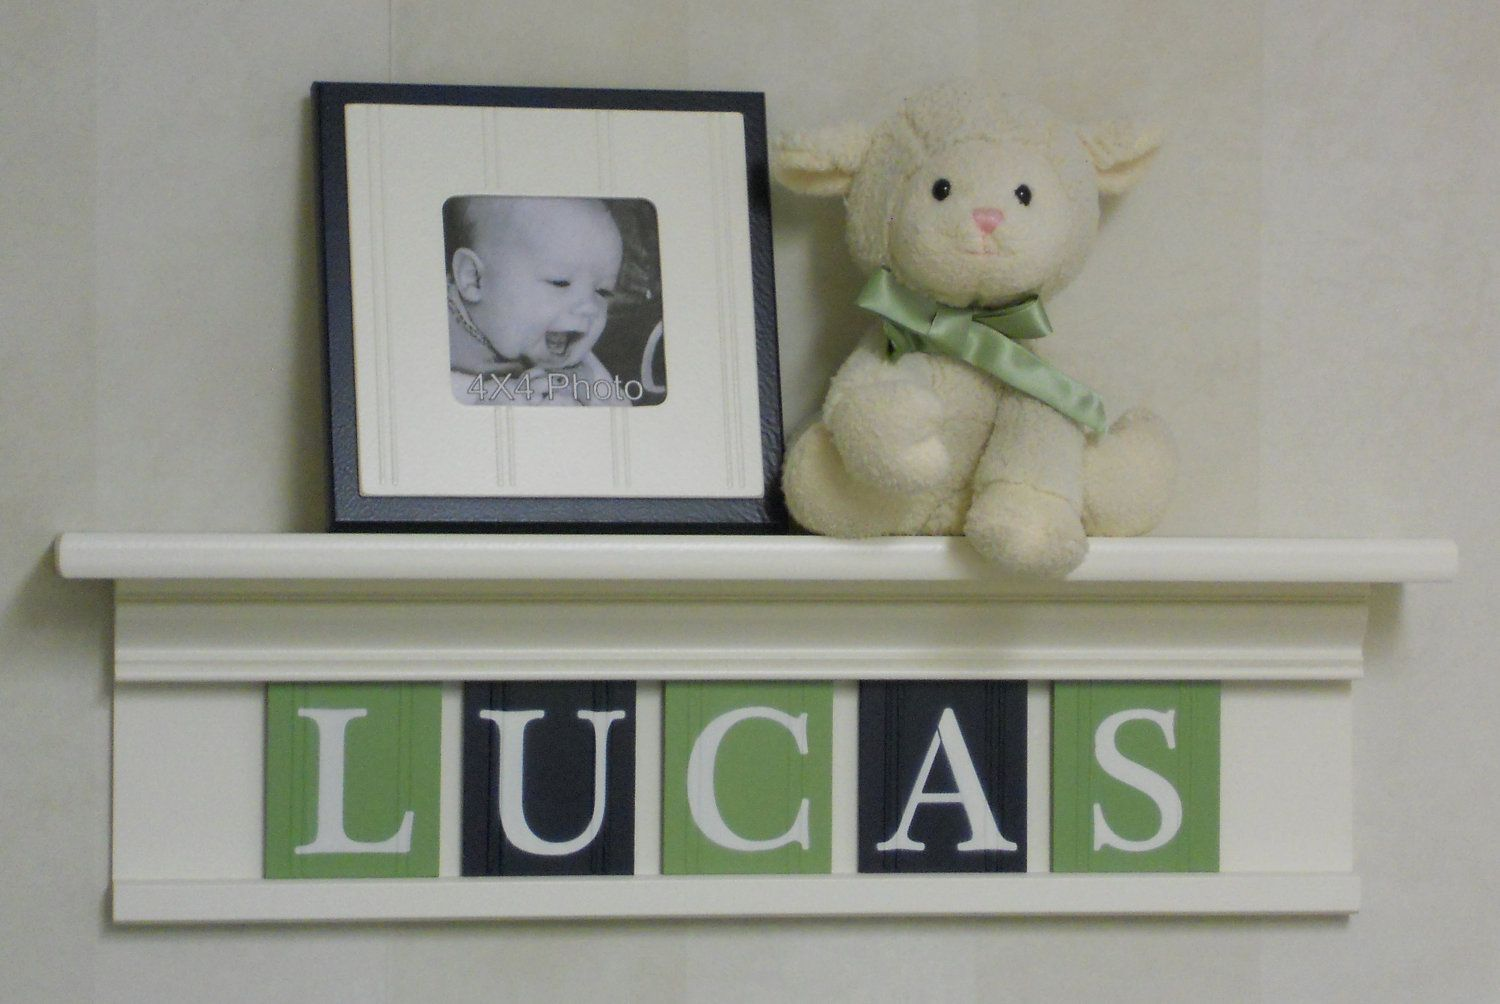 Wooden Letters Boy Nursery Decor Names In Wood Lucas On 24 Linen White Shelf With